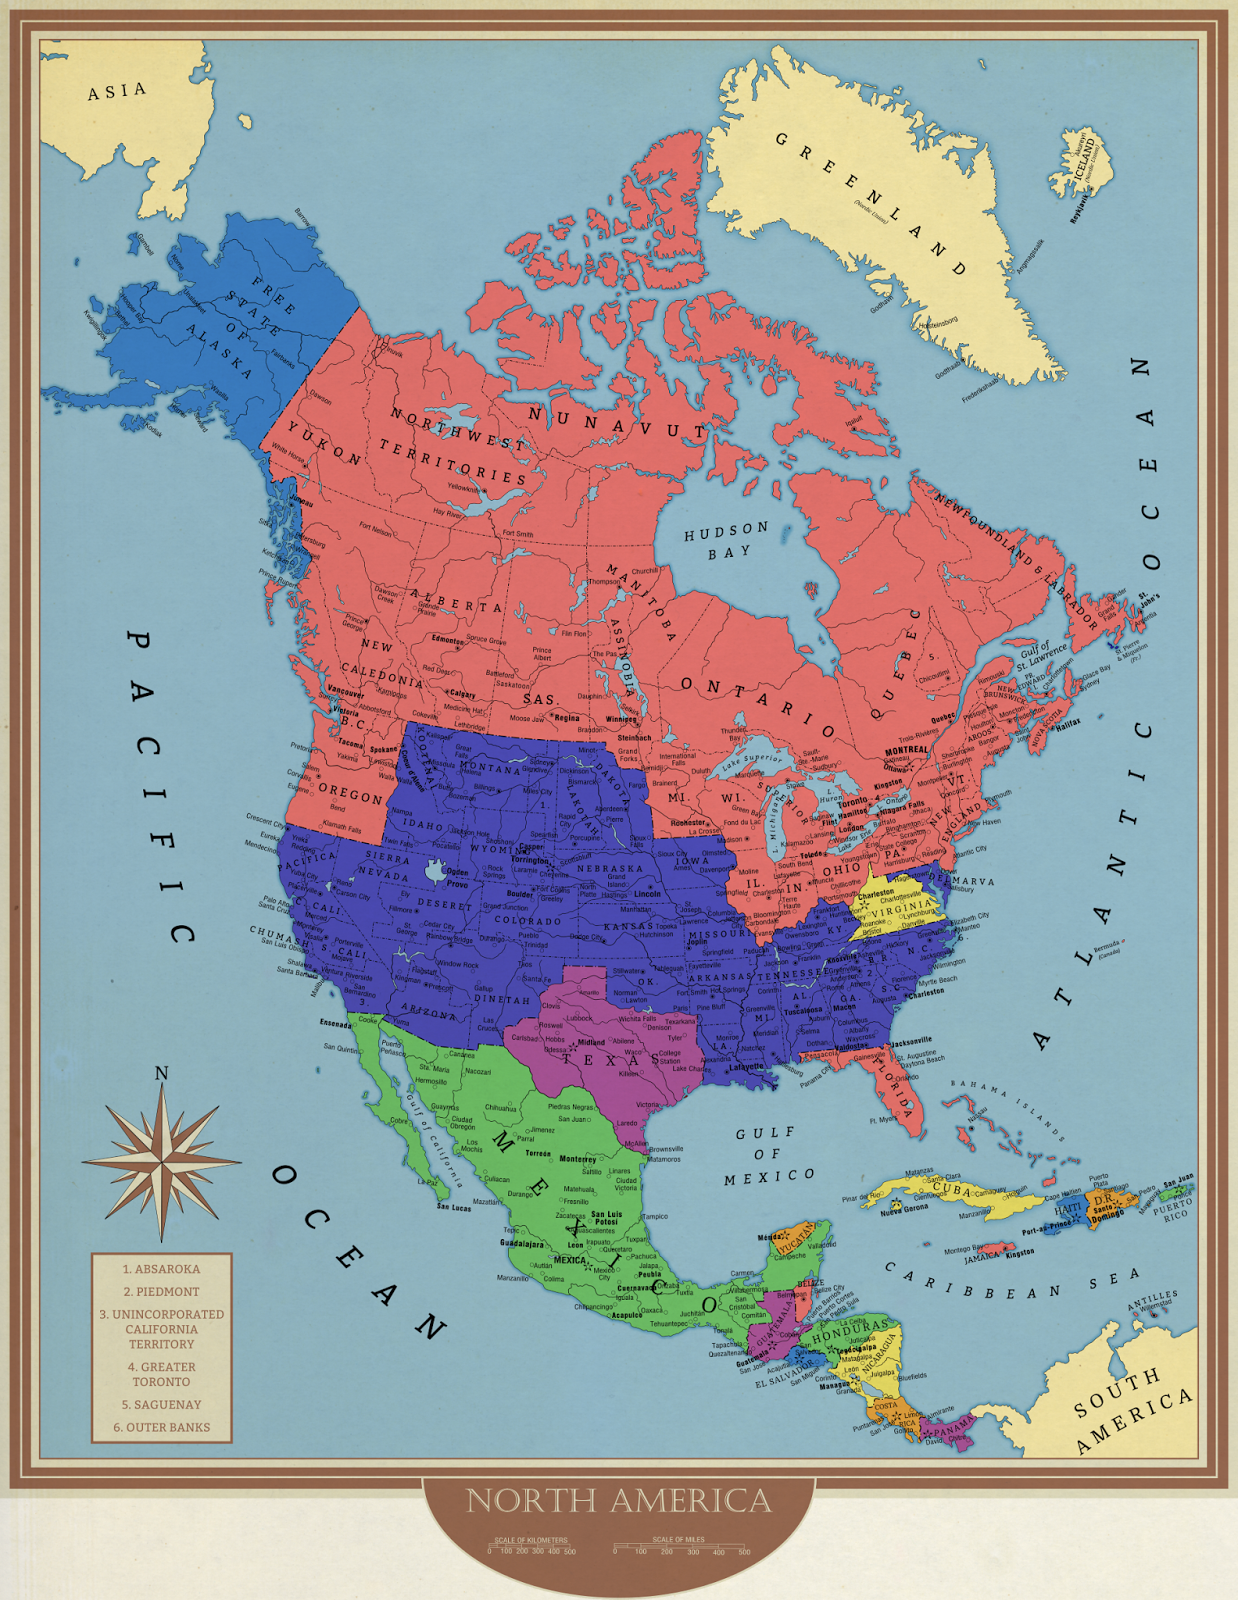 Pin by James Ahern on maps Pinterest Alternate history and History